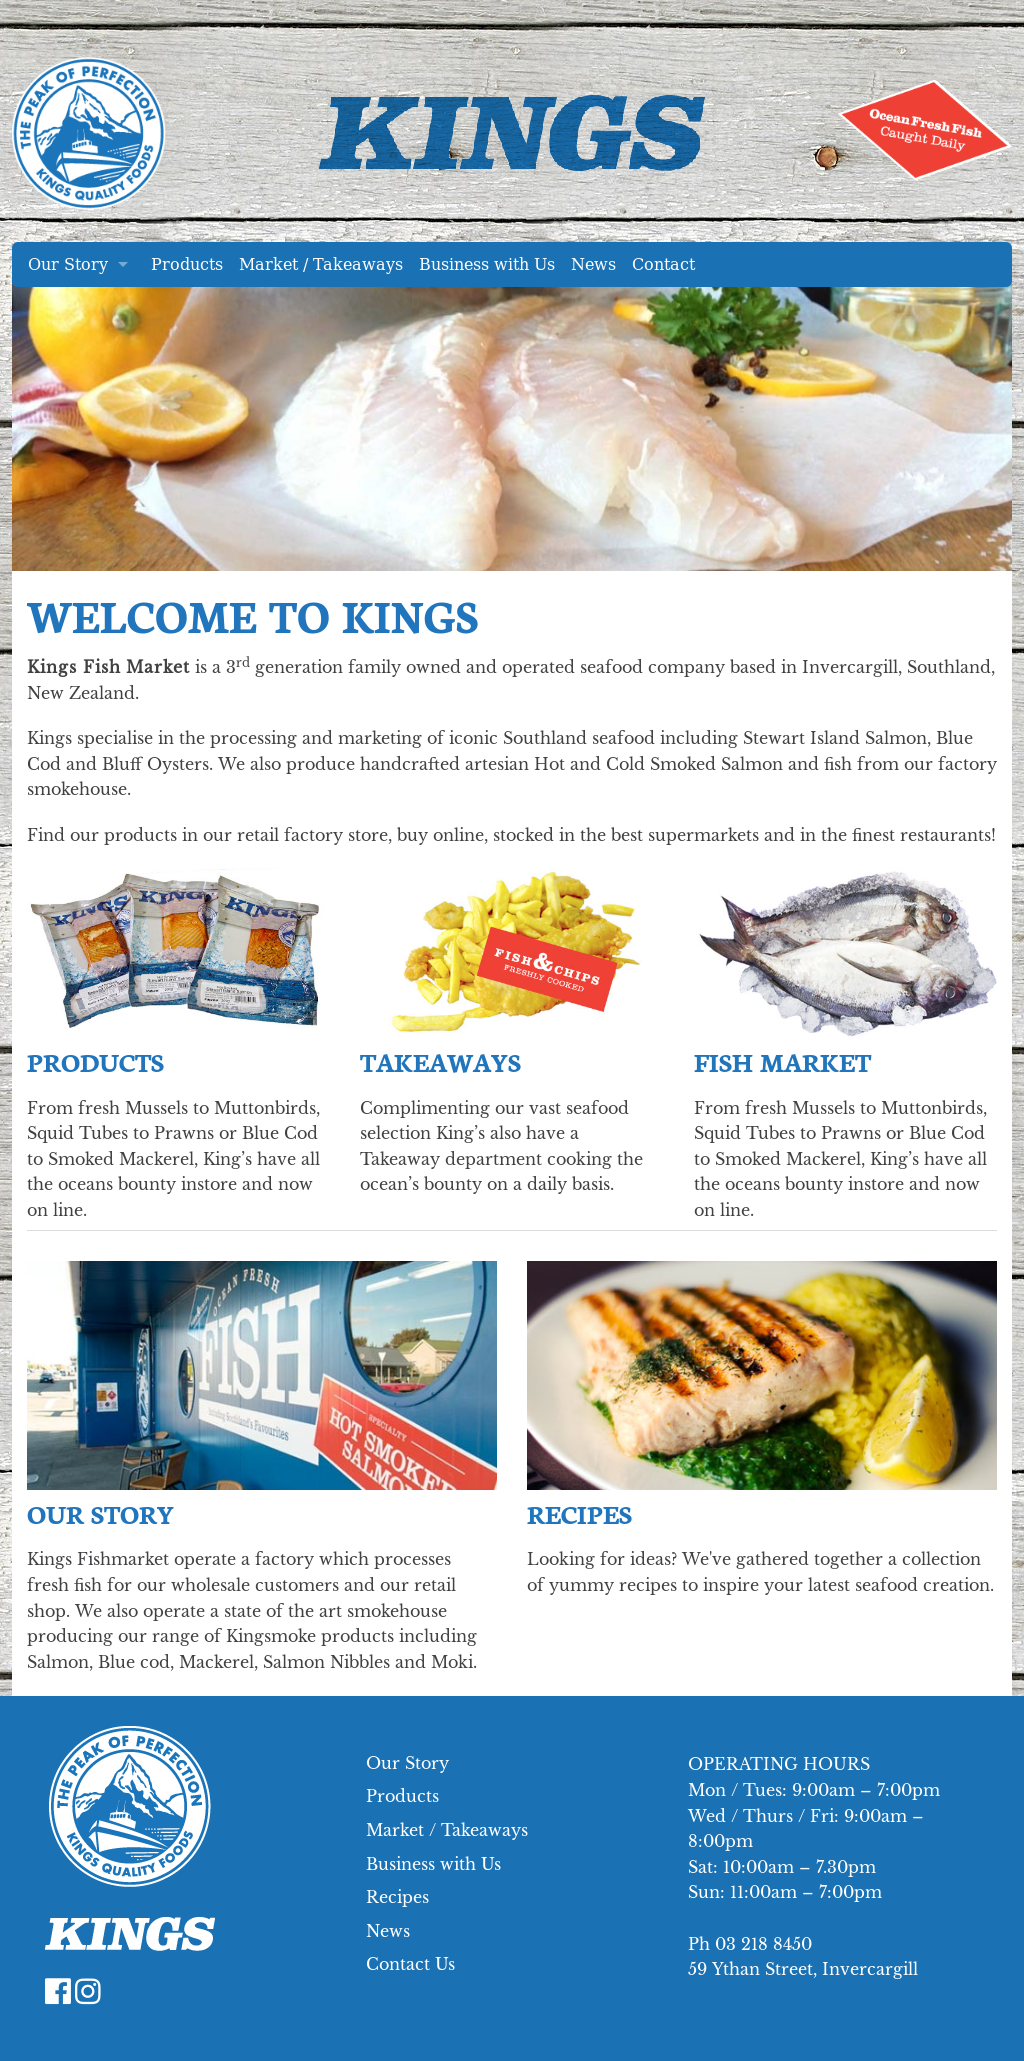 Kings Fish Market Competitors, Revenue and Employees - Owler